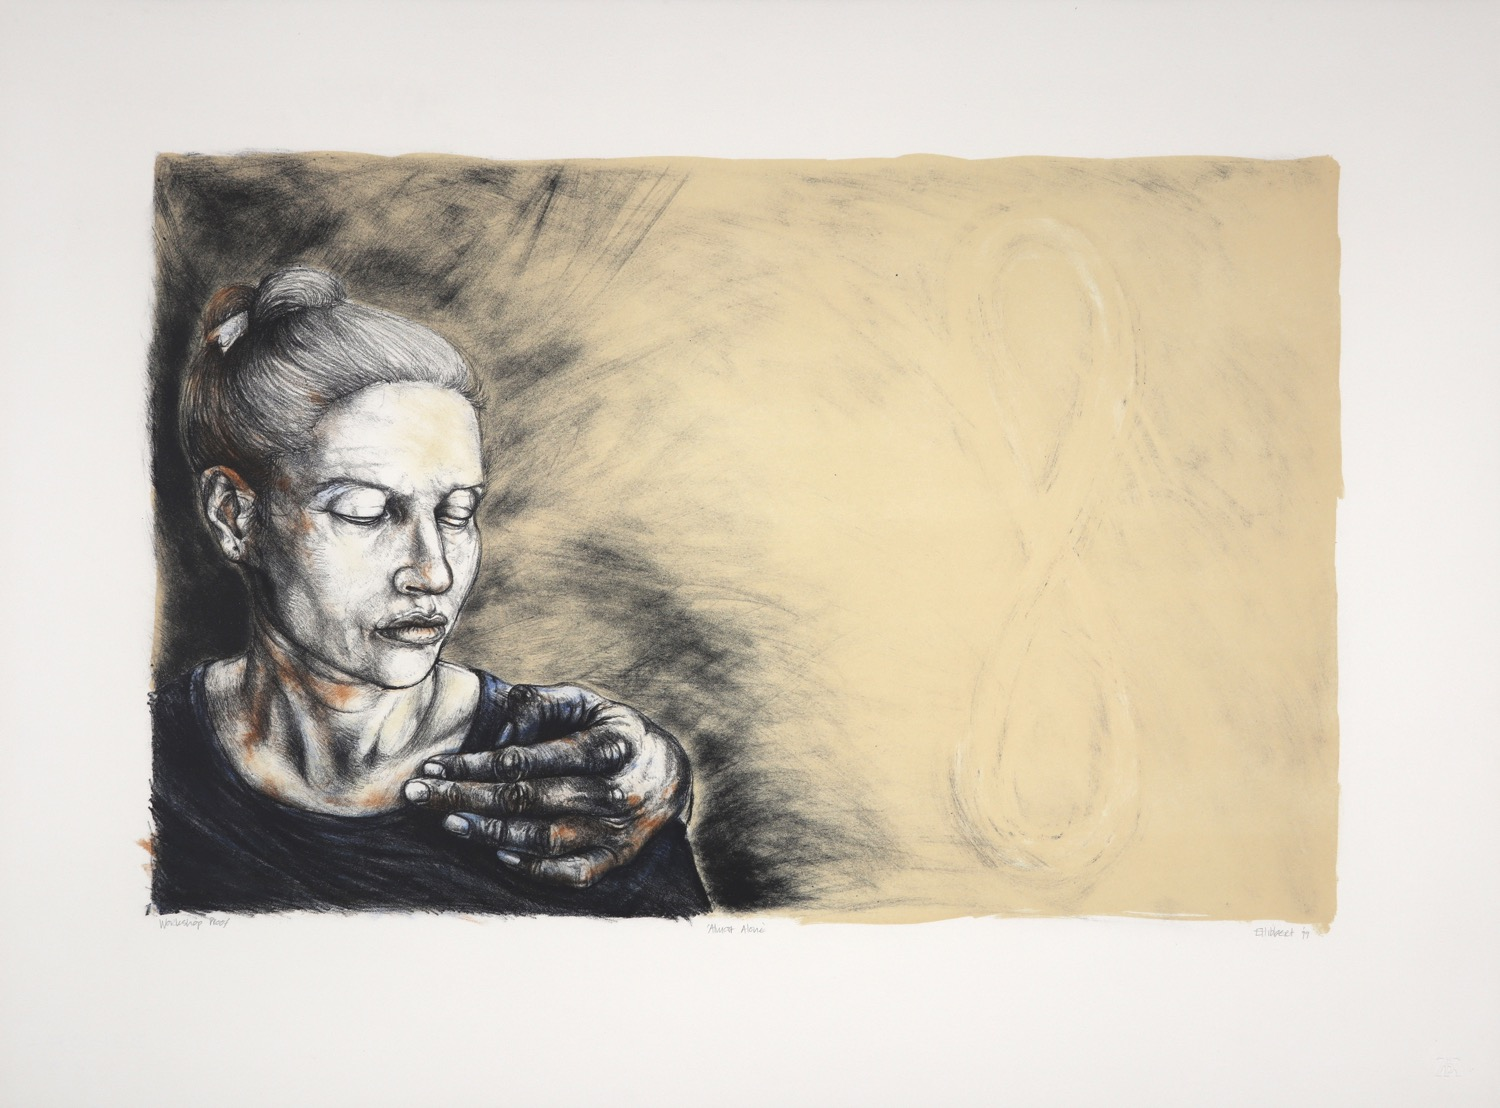 Woman's head and shoulders with protective hand on left, infinity sign on right of the print.